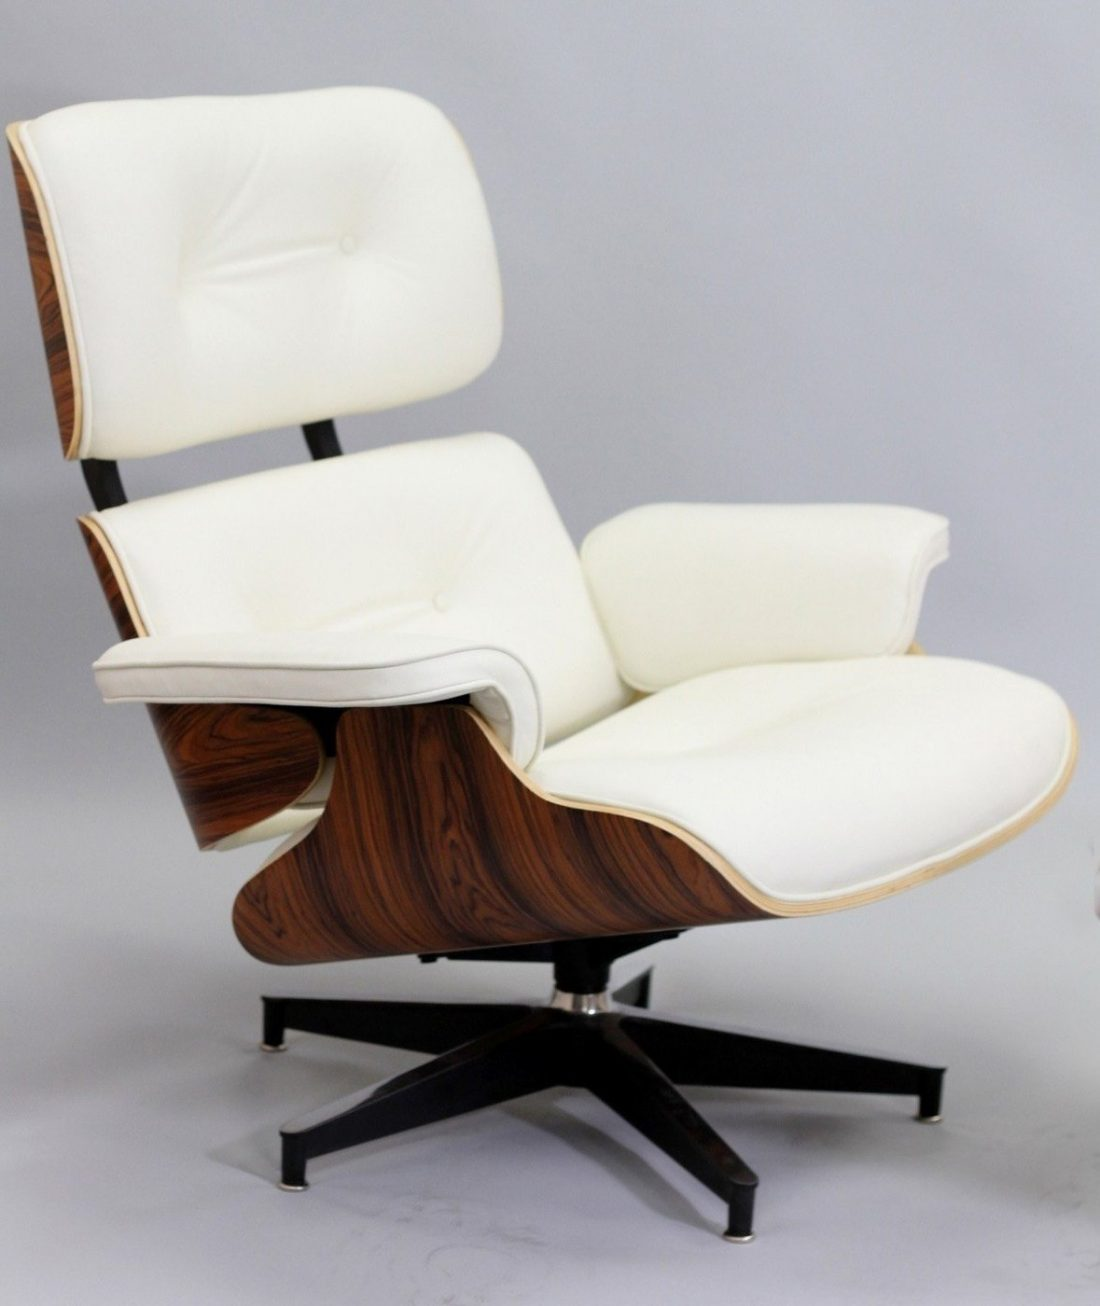 Sitting Chairs Herman Miller Eames Chair And Ottoman Copy Cat Chic